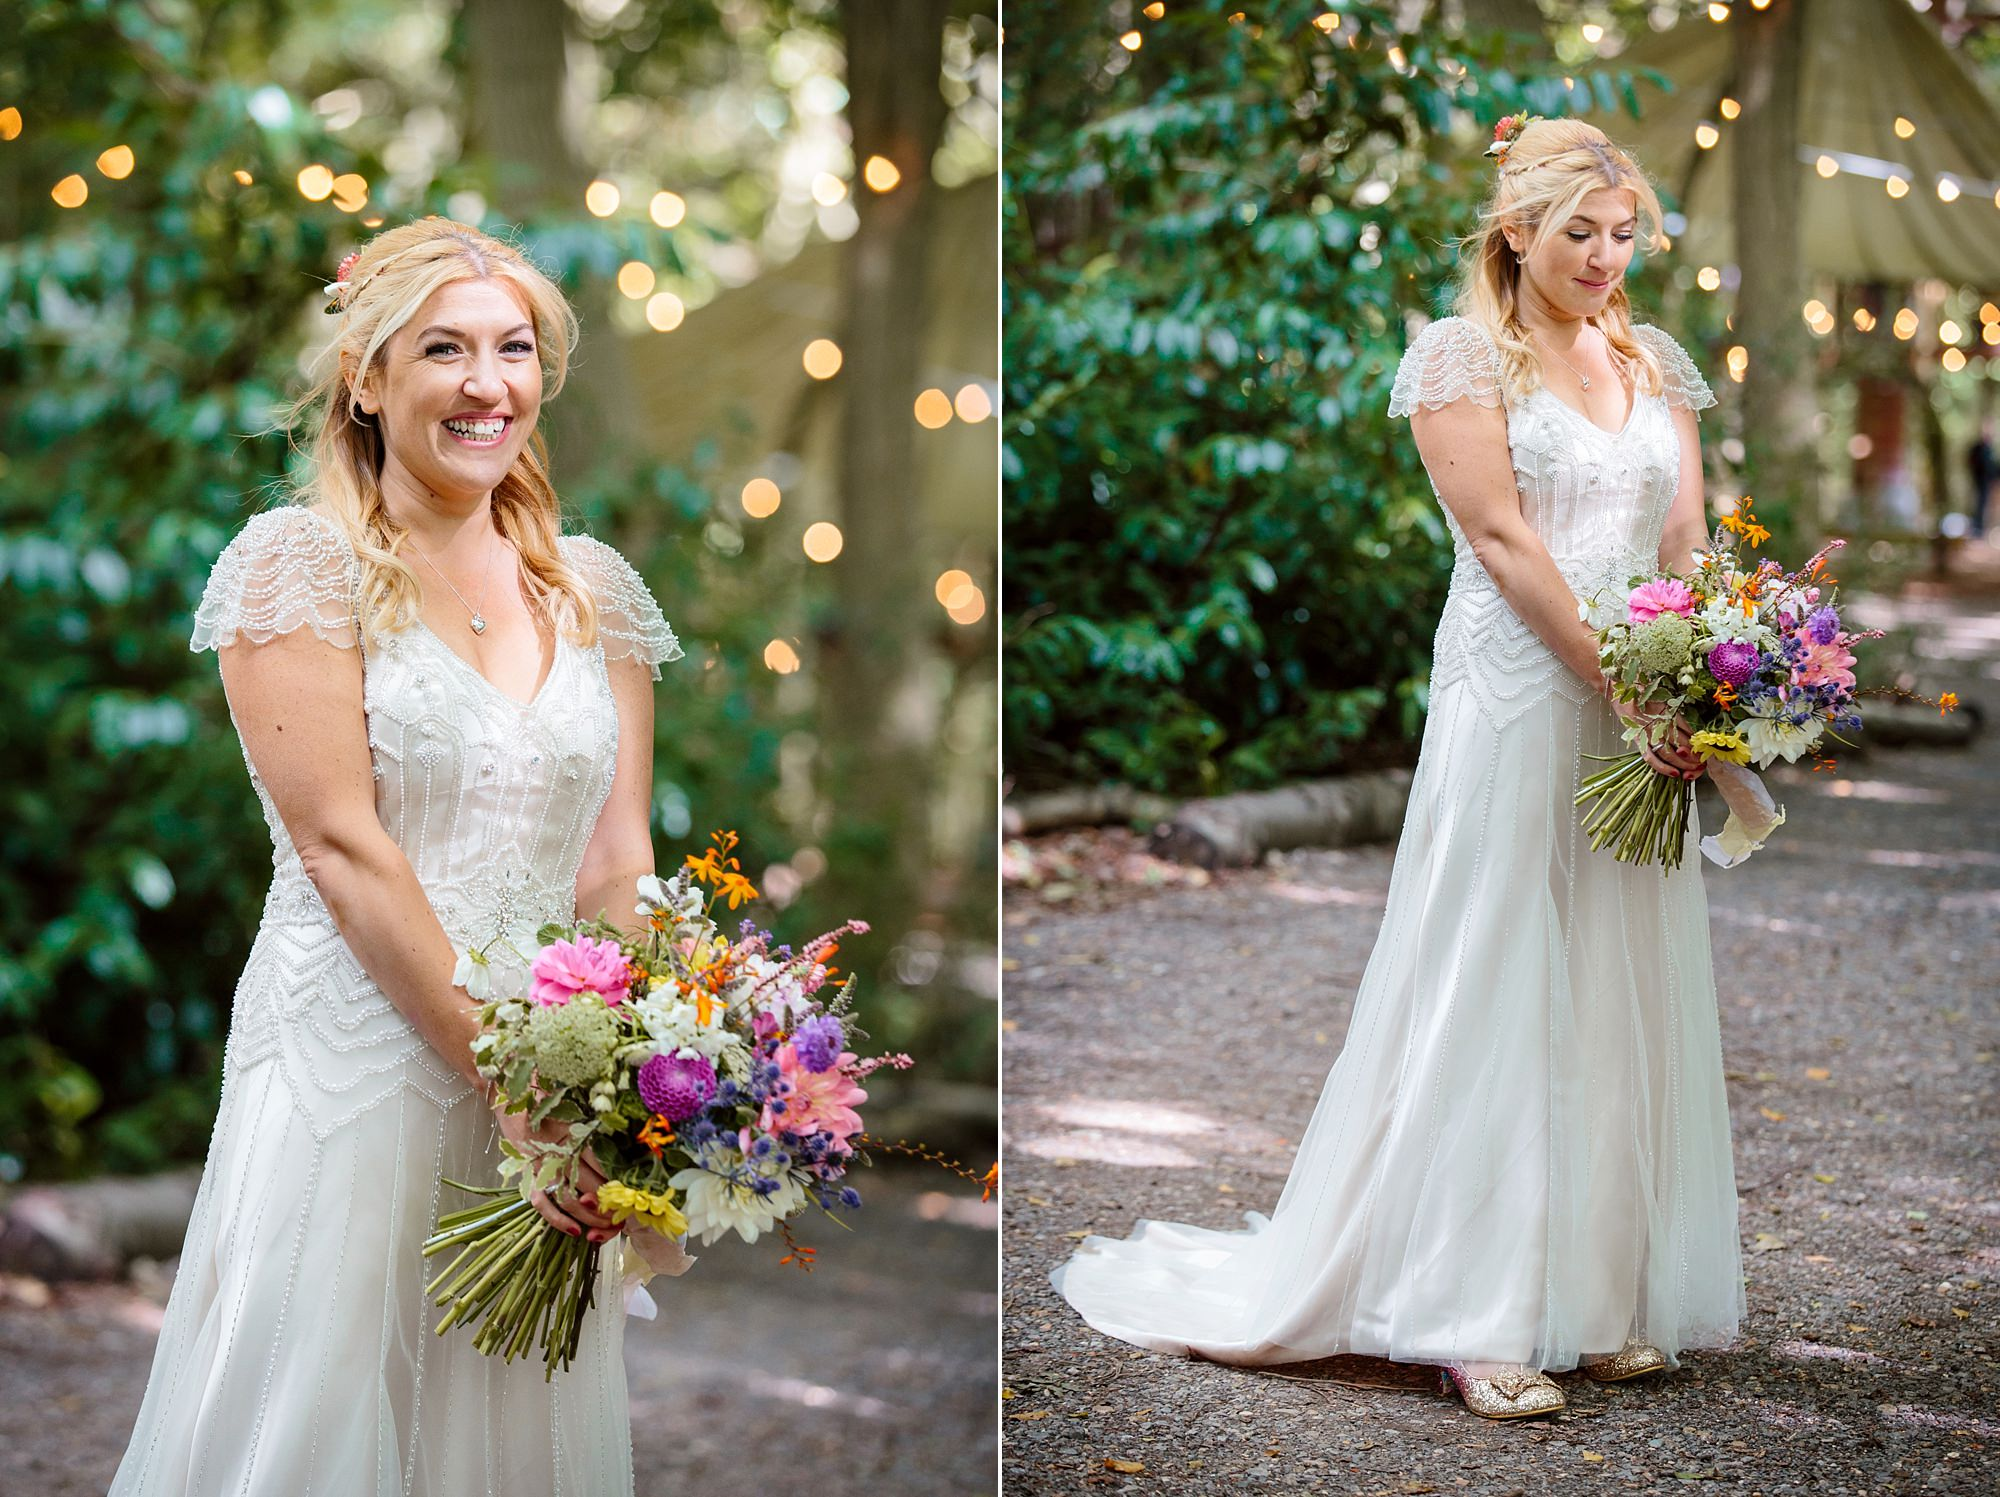 Woodland Weddings Tring portrait of bride